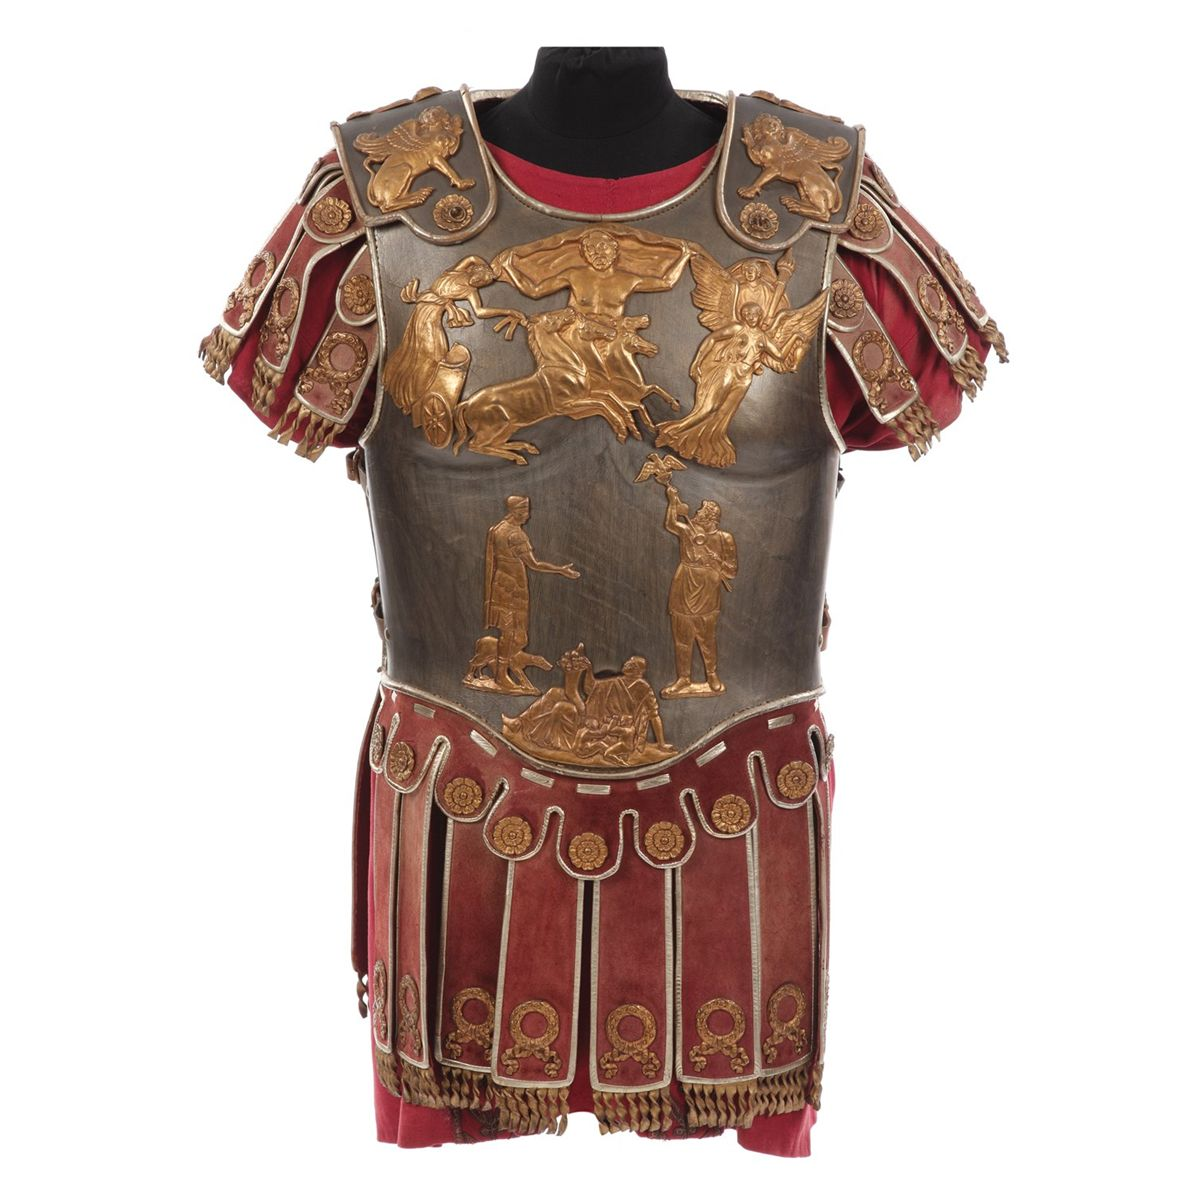 Roman costume worn by Christopher Plummer as u201cCommodusu201d in The Fall of the Roman Empire  sc 1 st  iCollector.com & Roman costume worn by Christopher Plummer as u201cCommodusu201d in The Fall ...